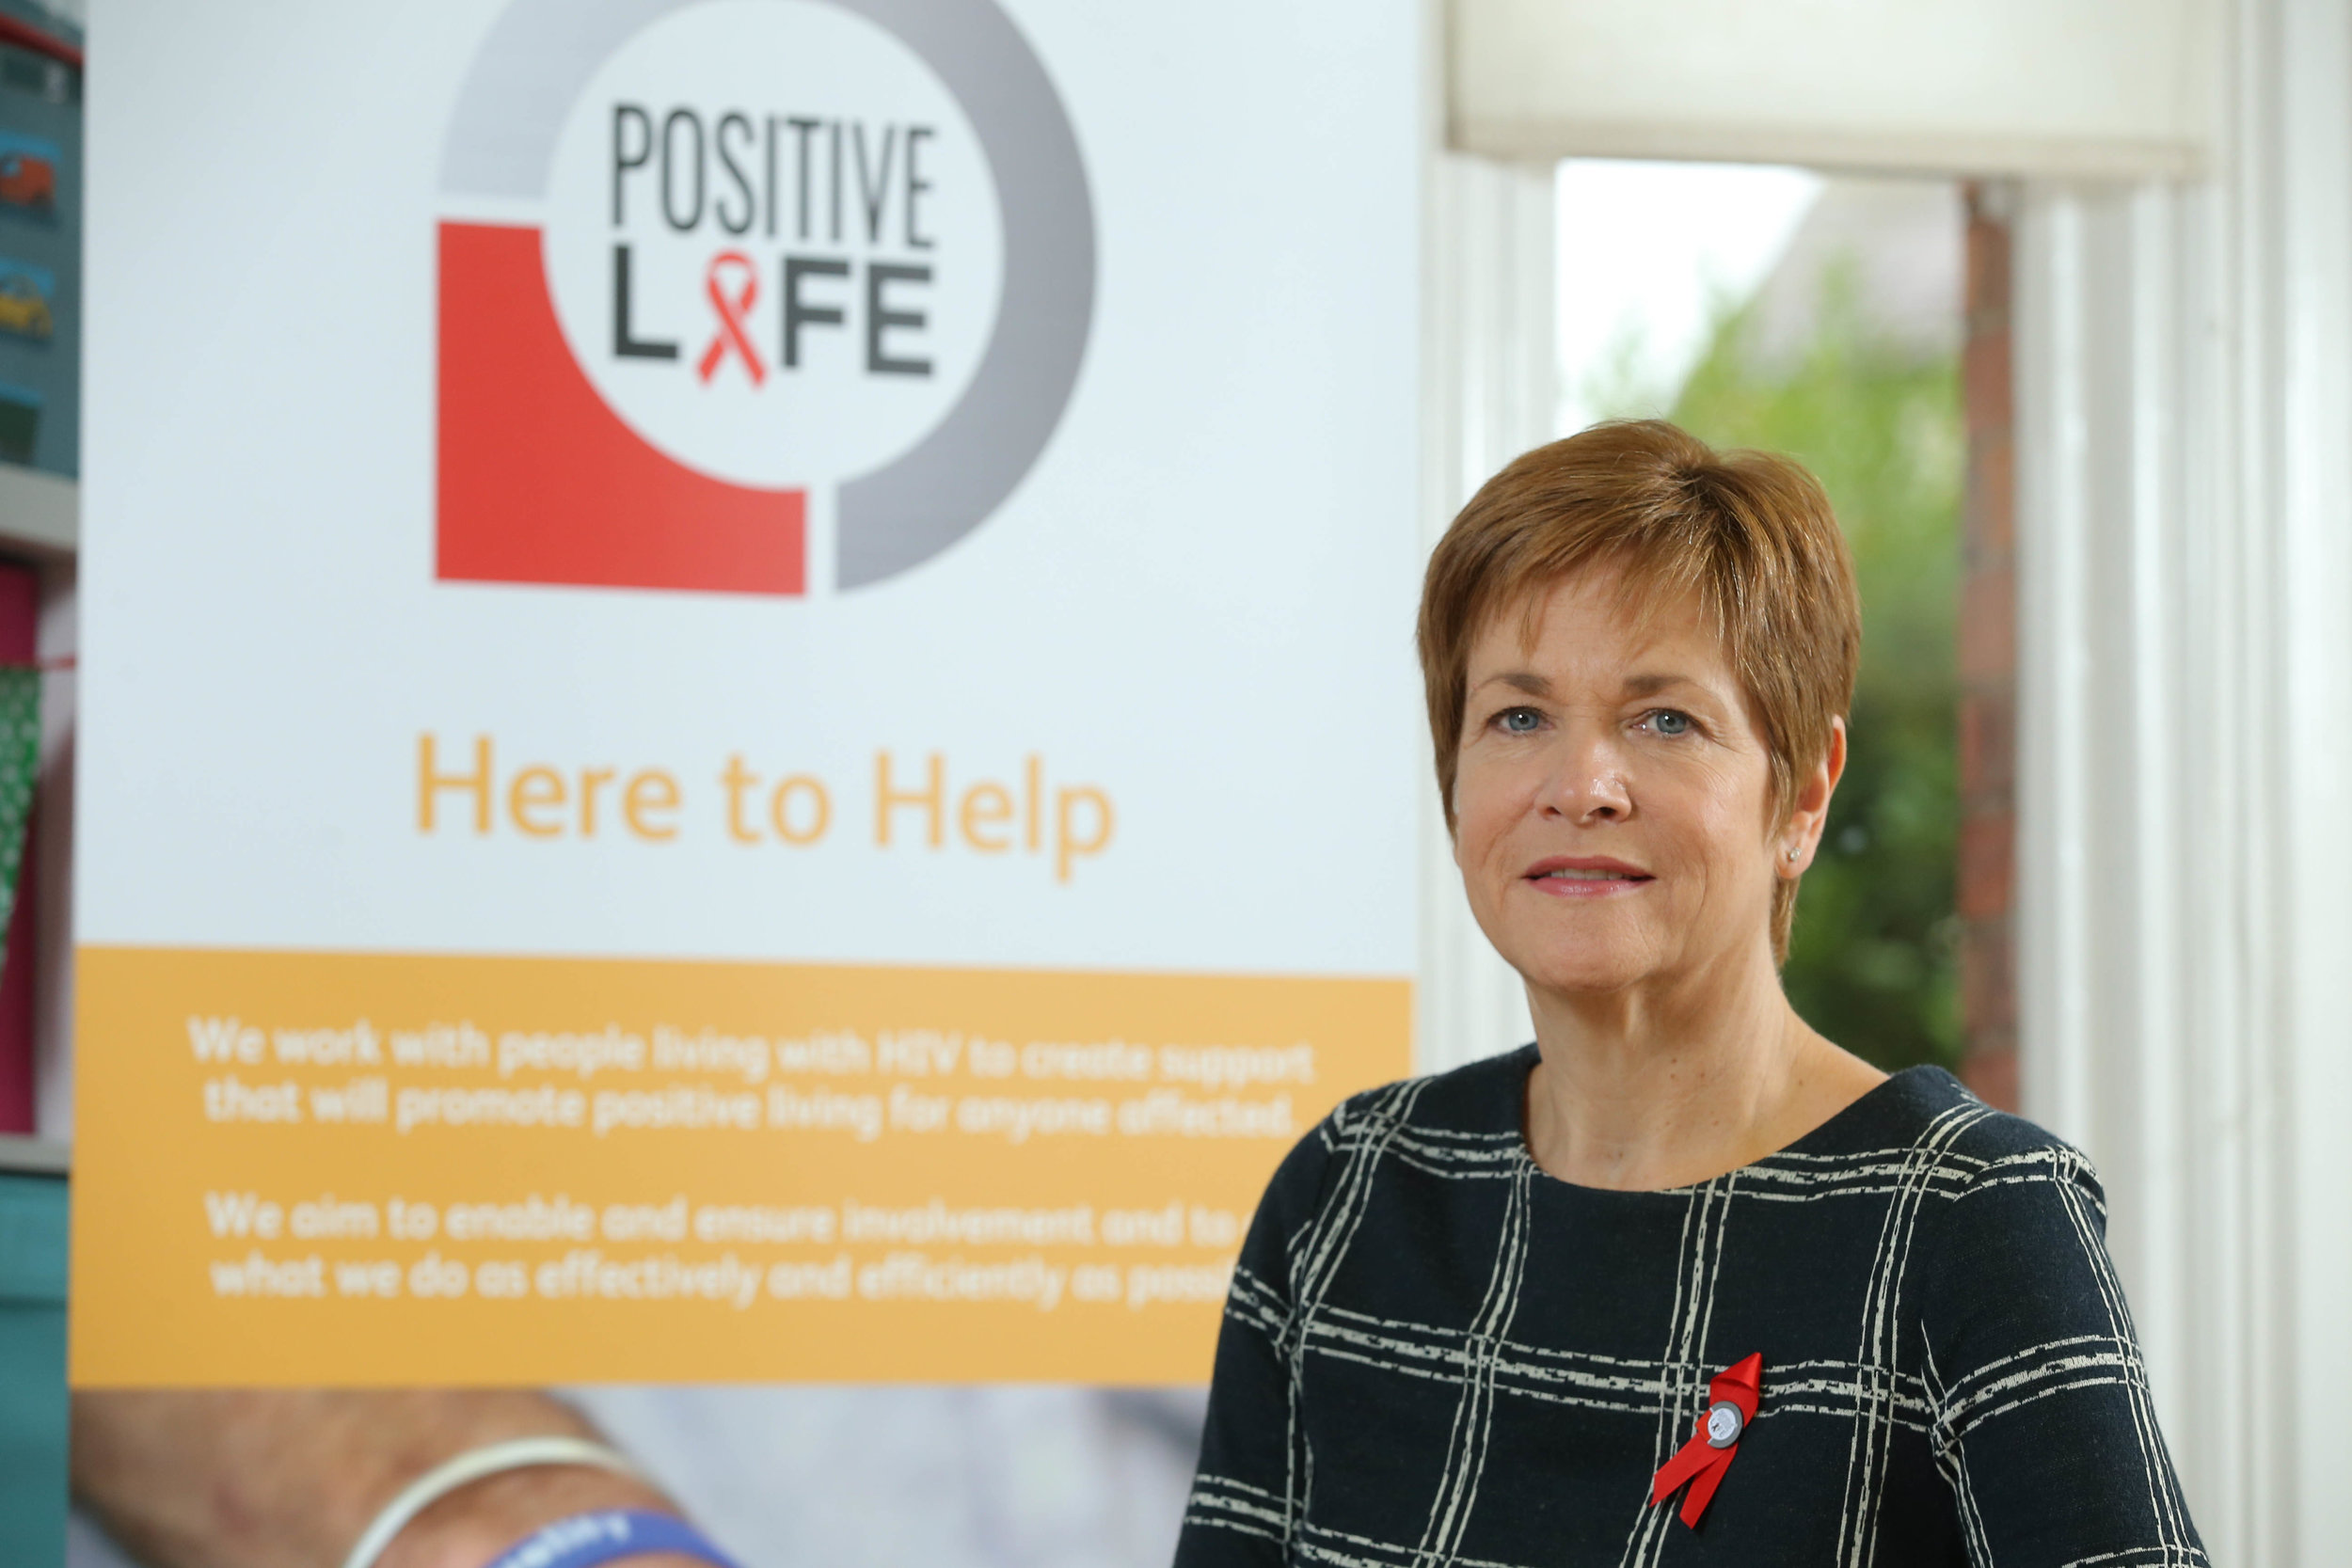 Chief Executive of Positive Life, Jacquie Richardson